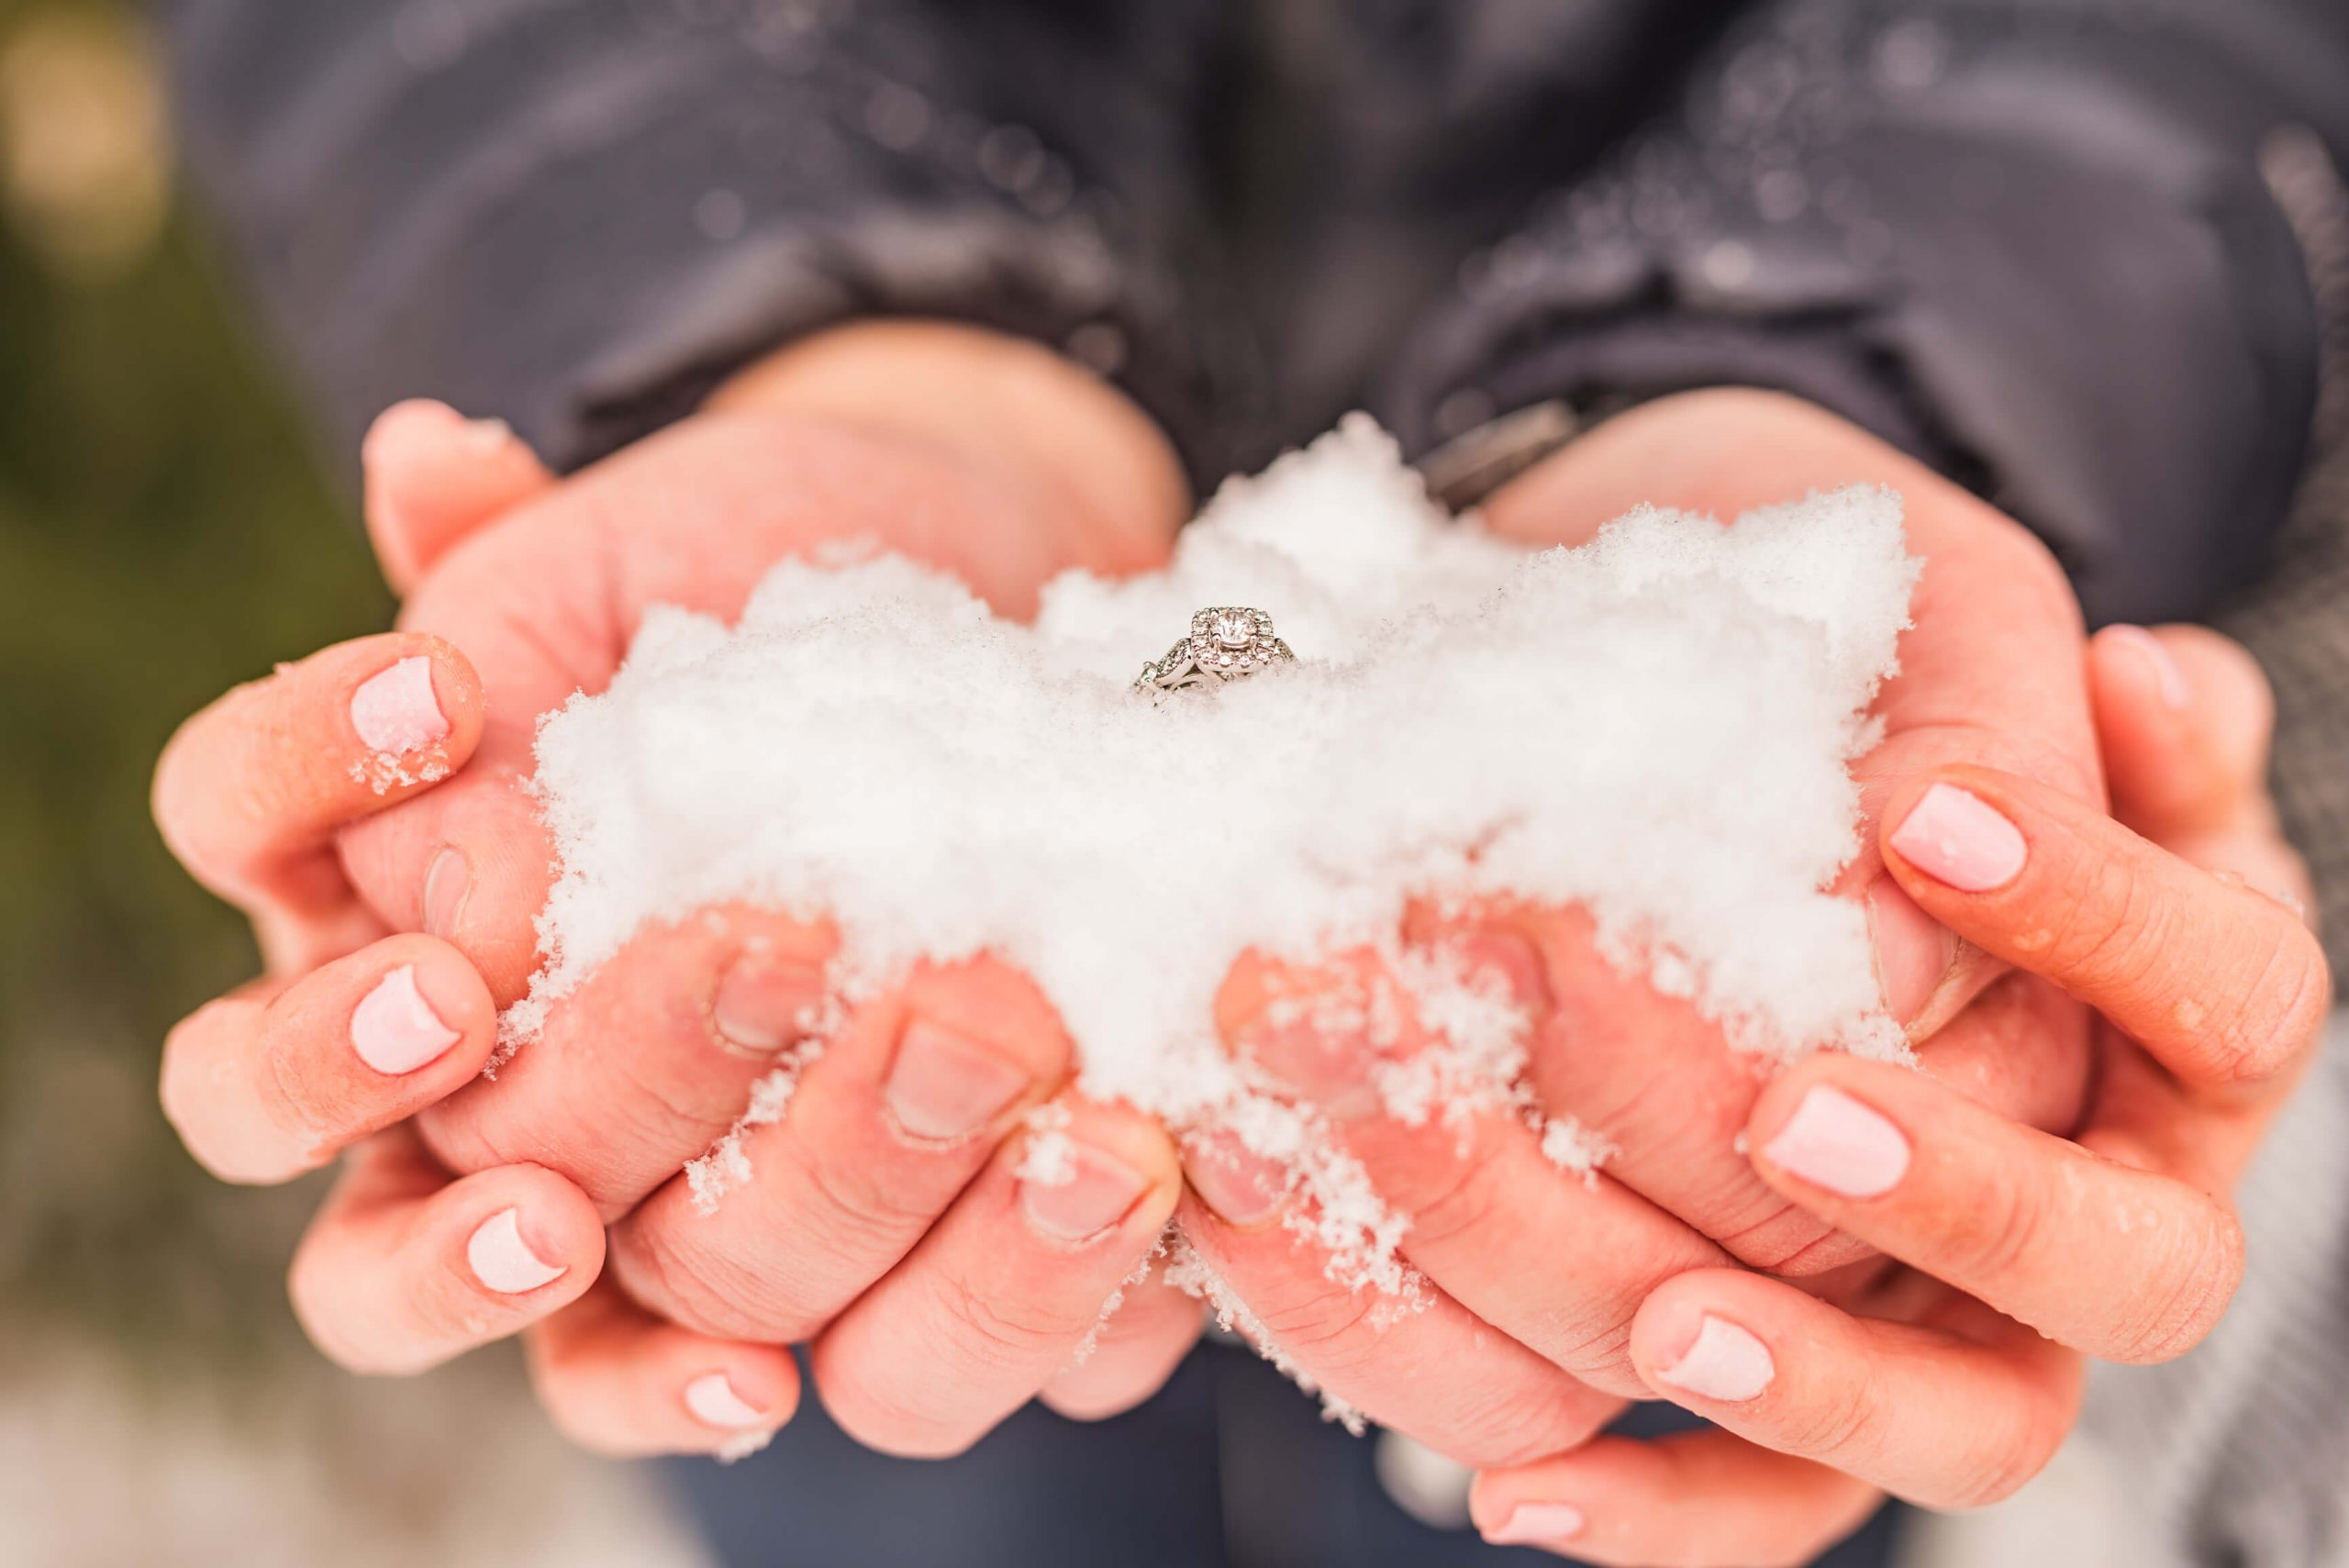 hands holding snow and engagement ring